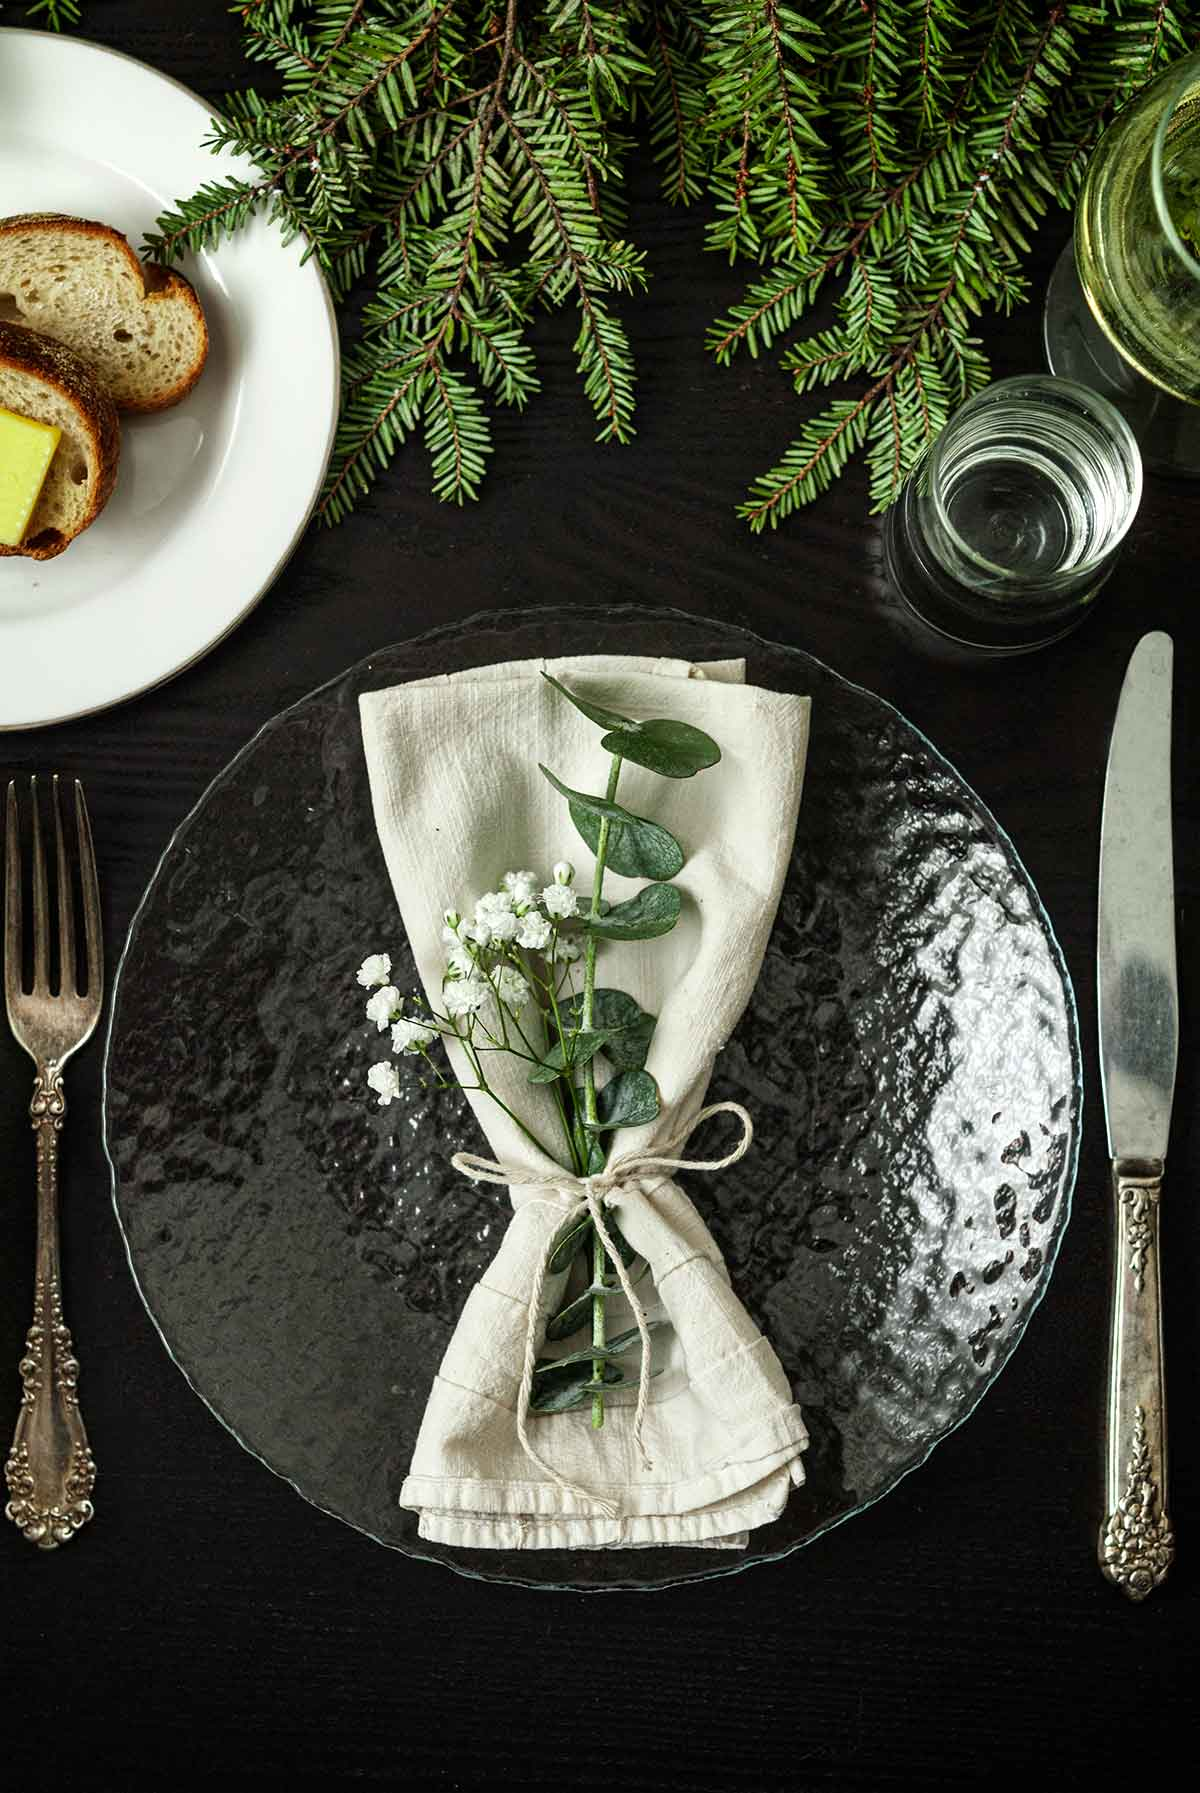 Eucalyptus and Baby's Breath in a napkin on a table with holiday greenery, a plate of bread, silverware and glassware.